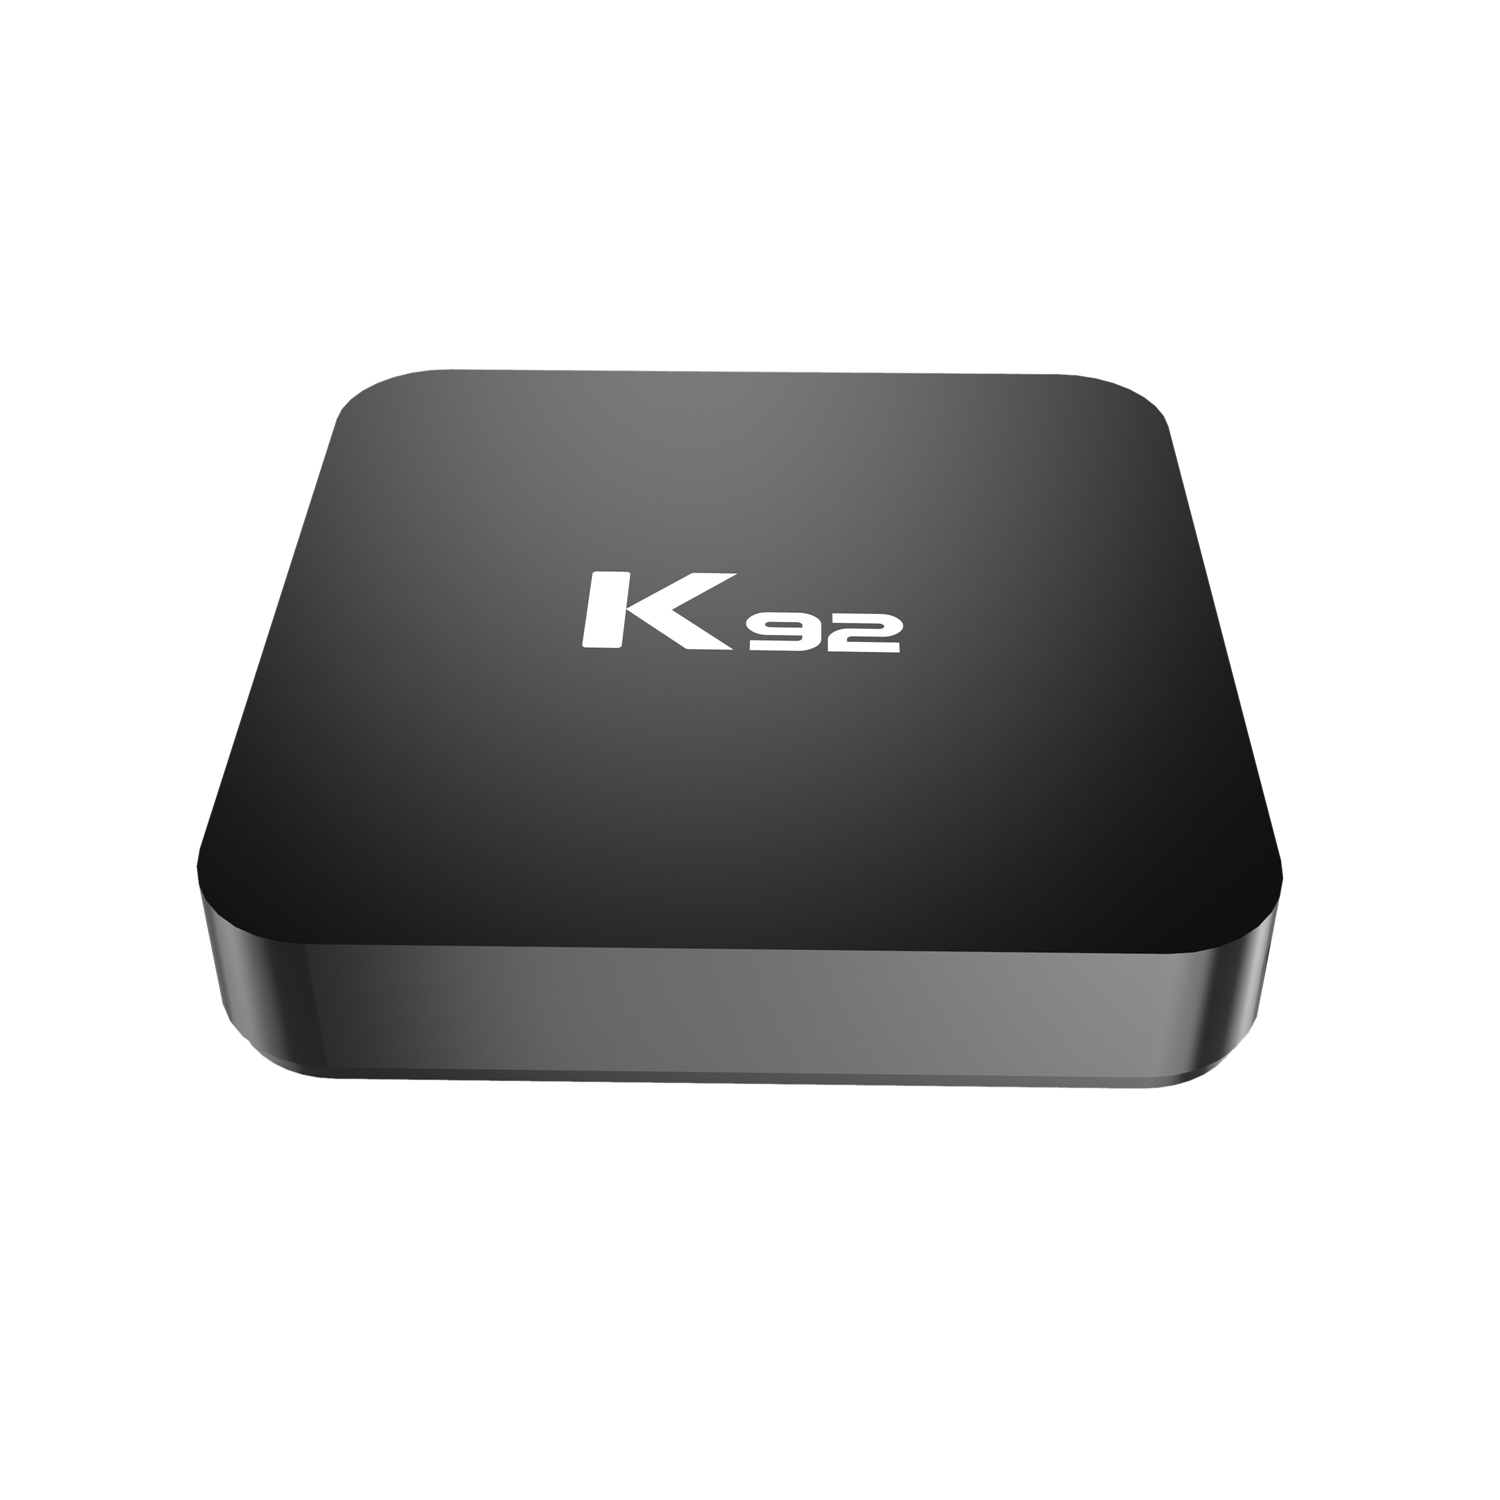 K92 S905X2 Android 8,1 Smart tv Box 4 Гб ram 2,4G/5G WiFi Bluetooth 4,1 телеприставка image